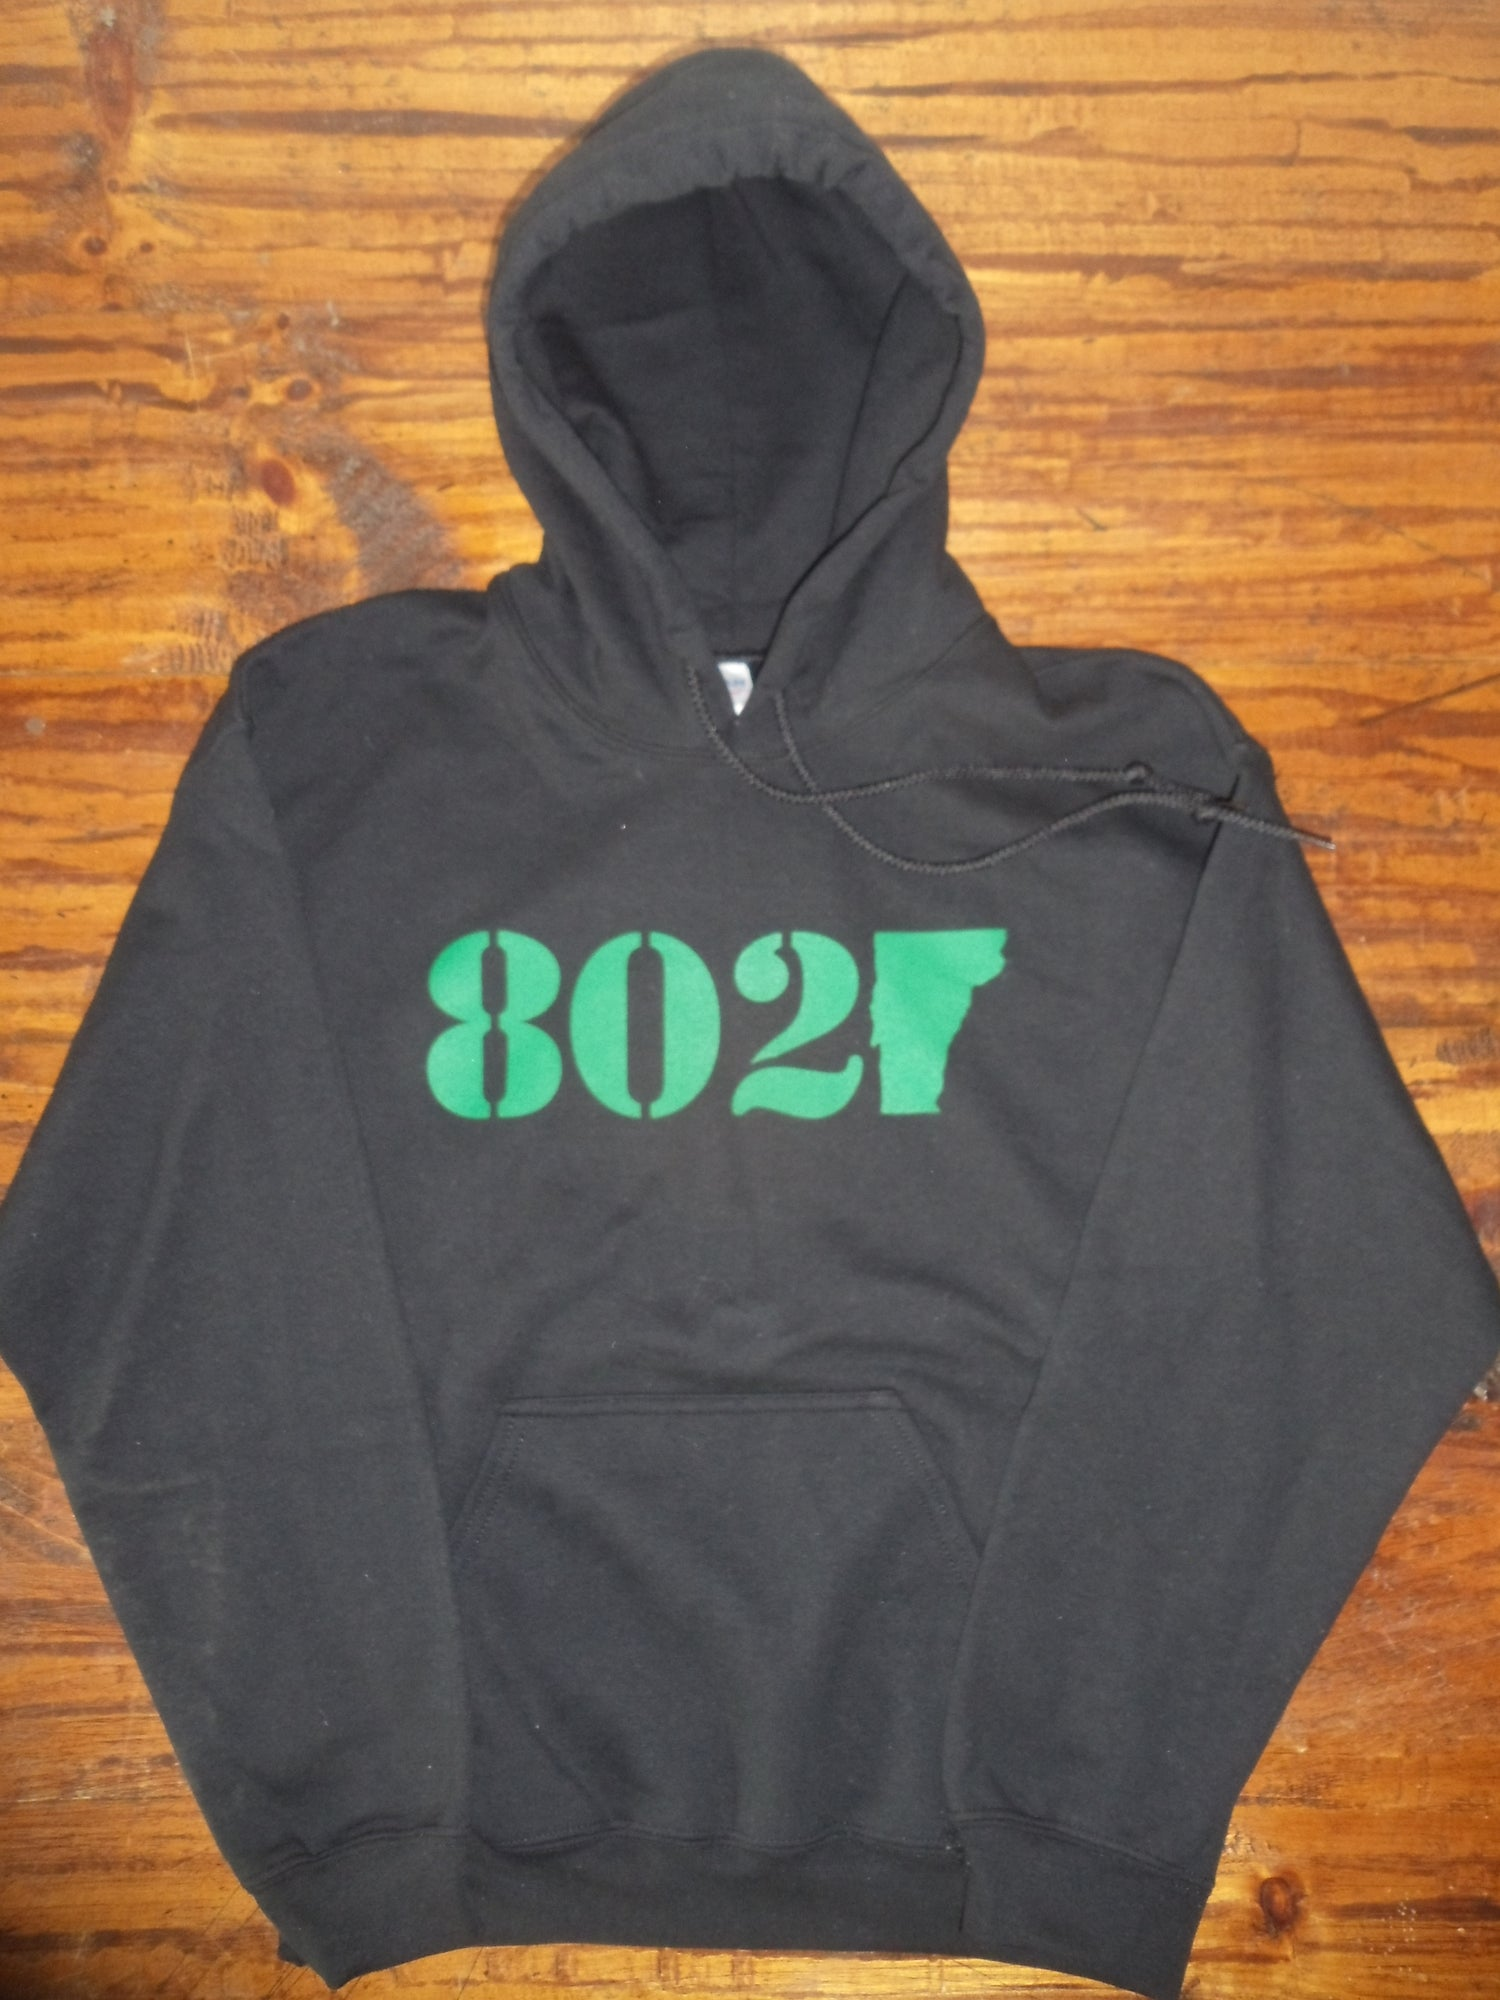 Image of 802 Classic Vermont Hooded Sweatshirt - Green logo on black Hoodie